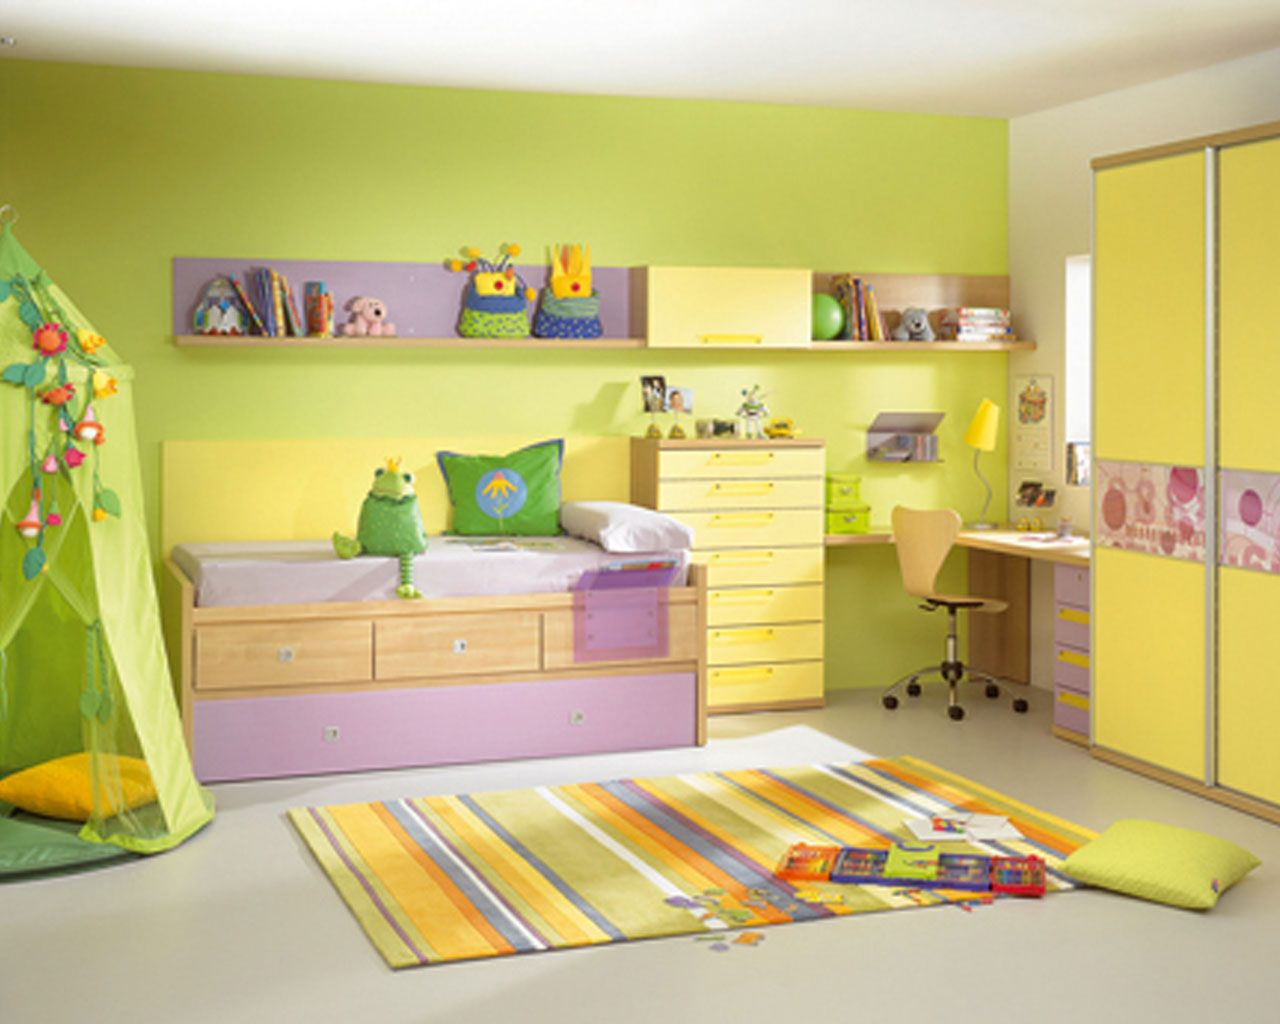 Lime Green And White Themed Kids Room Paint Ideas With